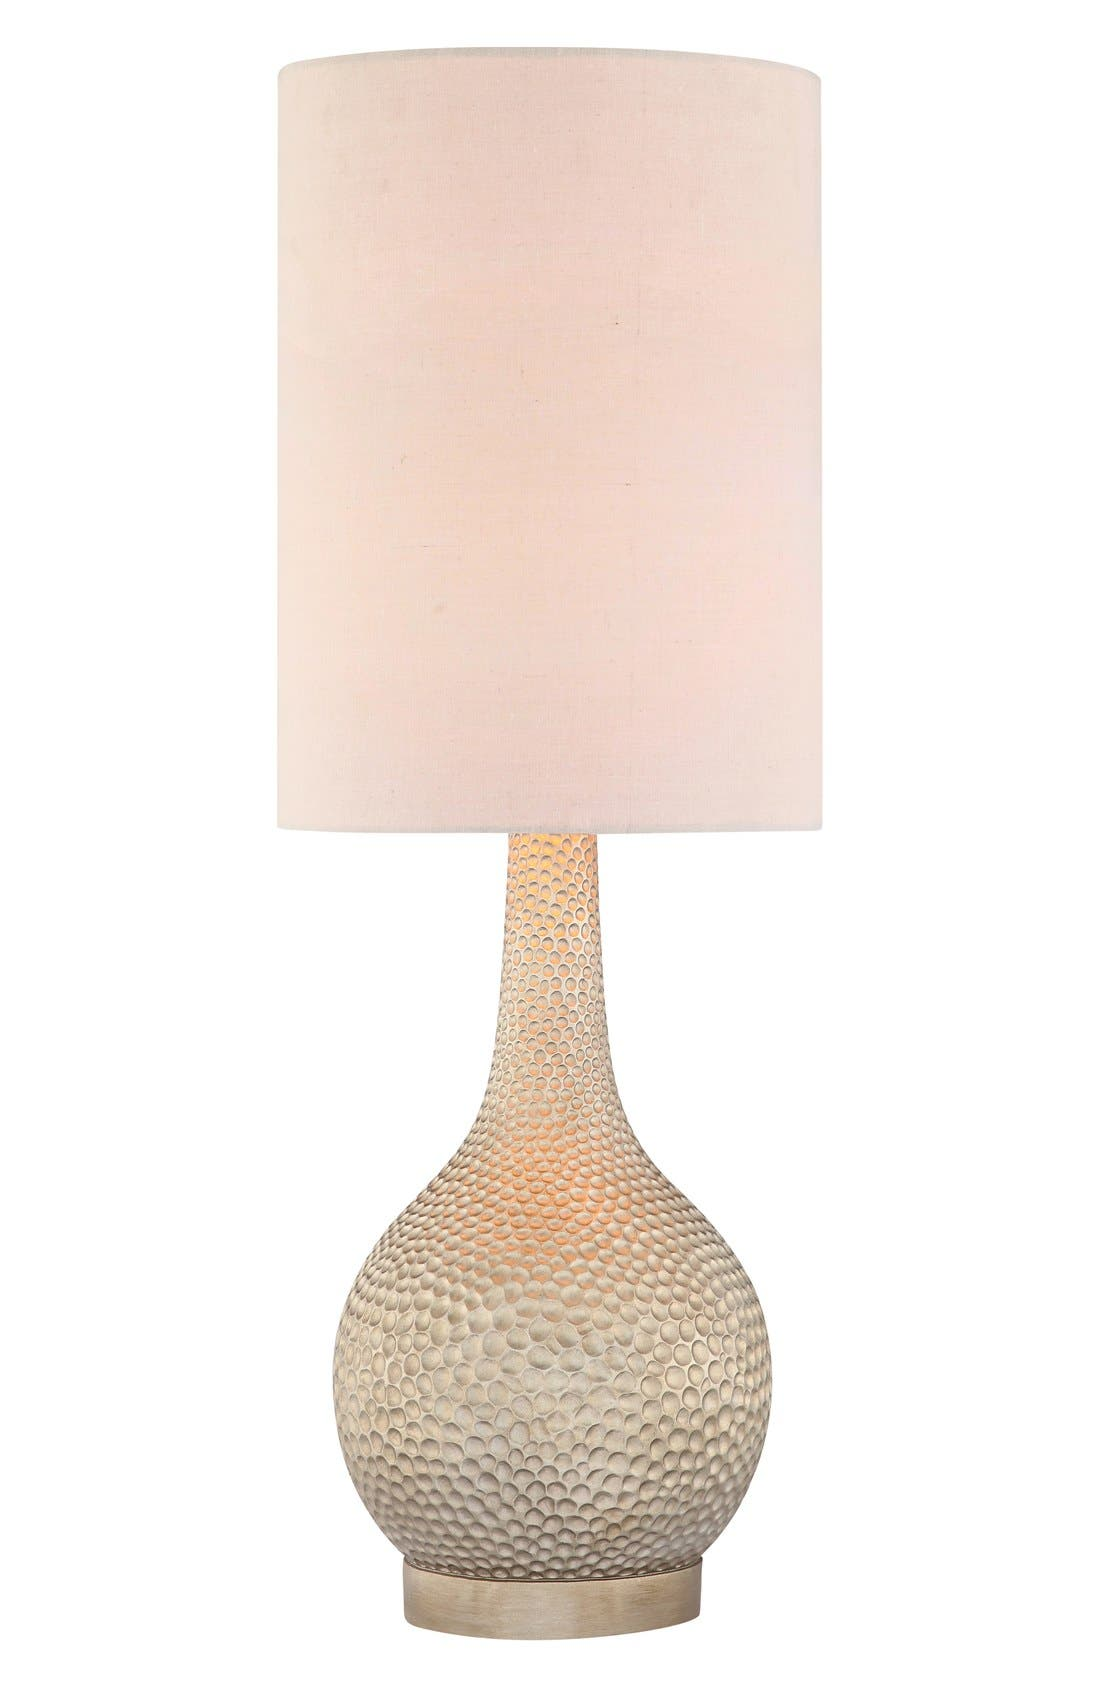 'Champagne Silver' Hammered Metal Table Lamp,                             Main thumbnail 1, color,                             Champagne Silver